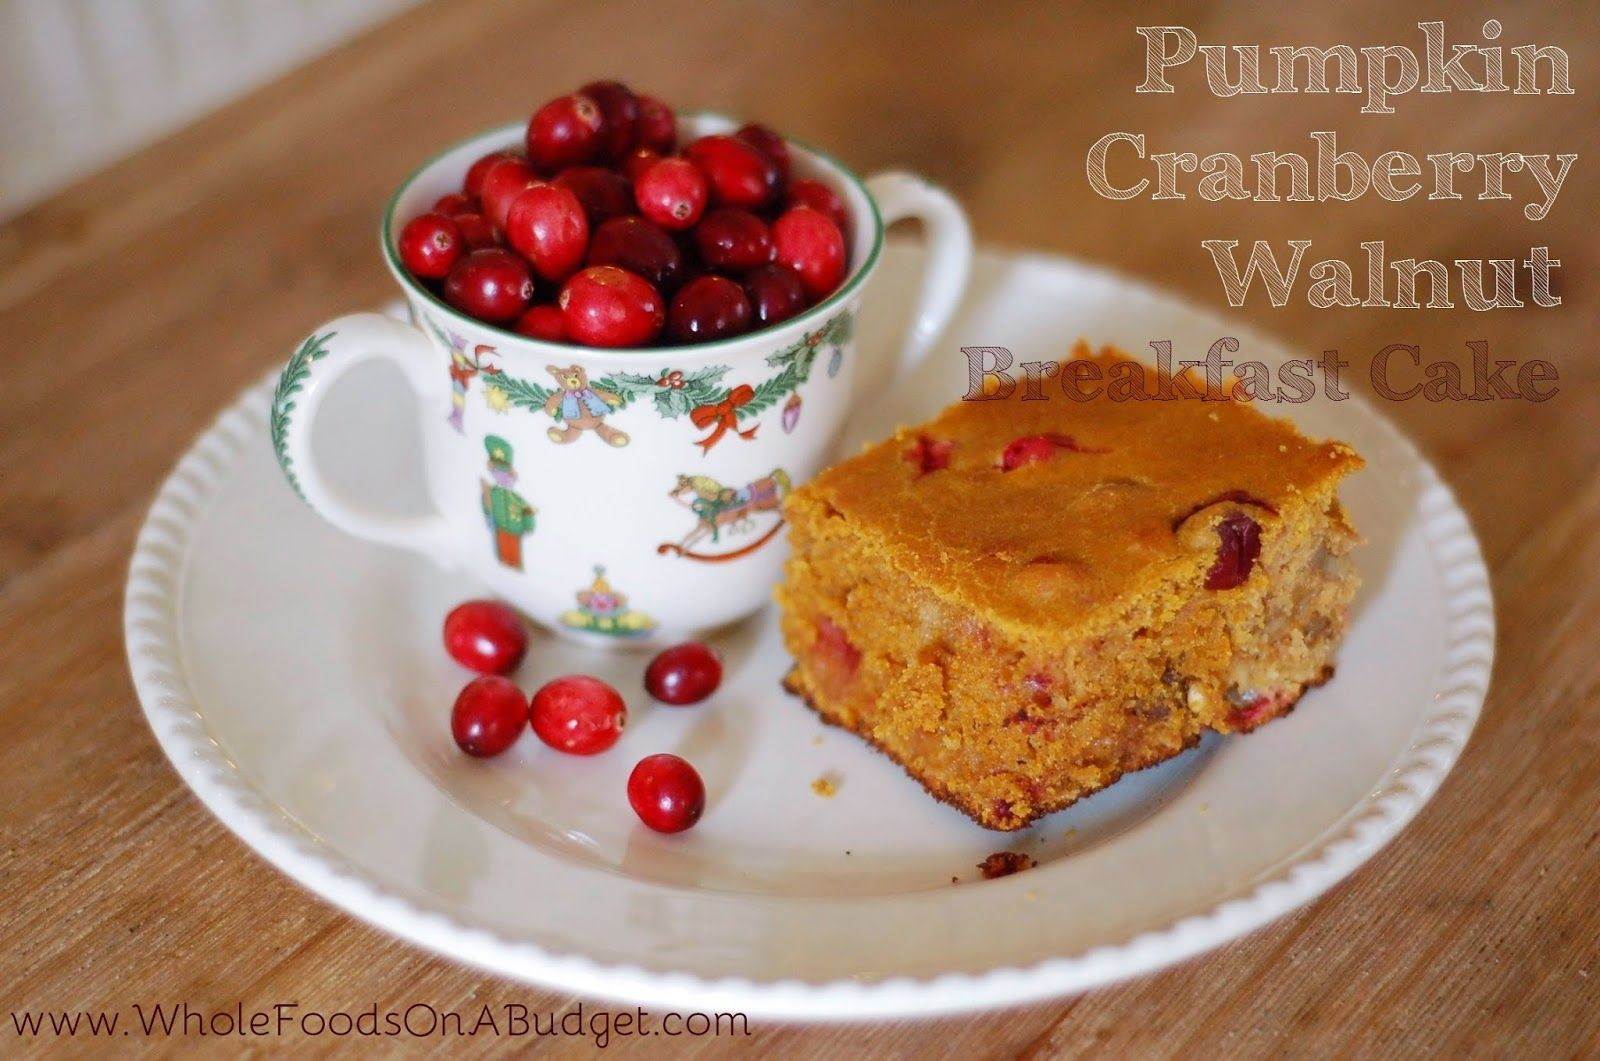 Whole Foods On A Budget  Pumpkin Breakfast Cake With